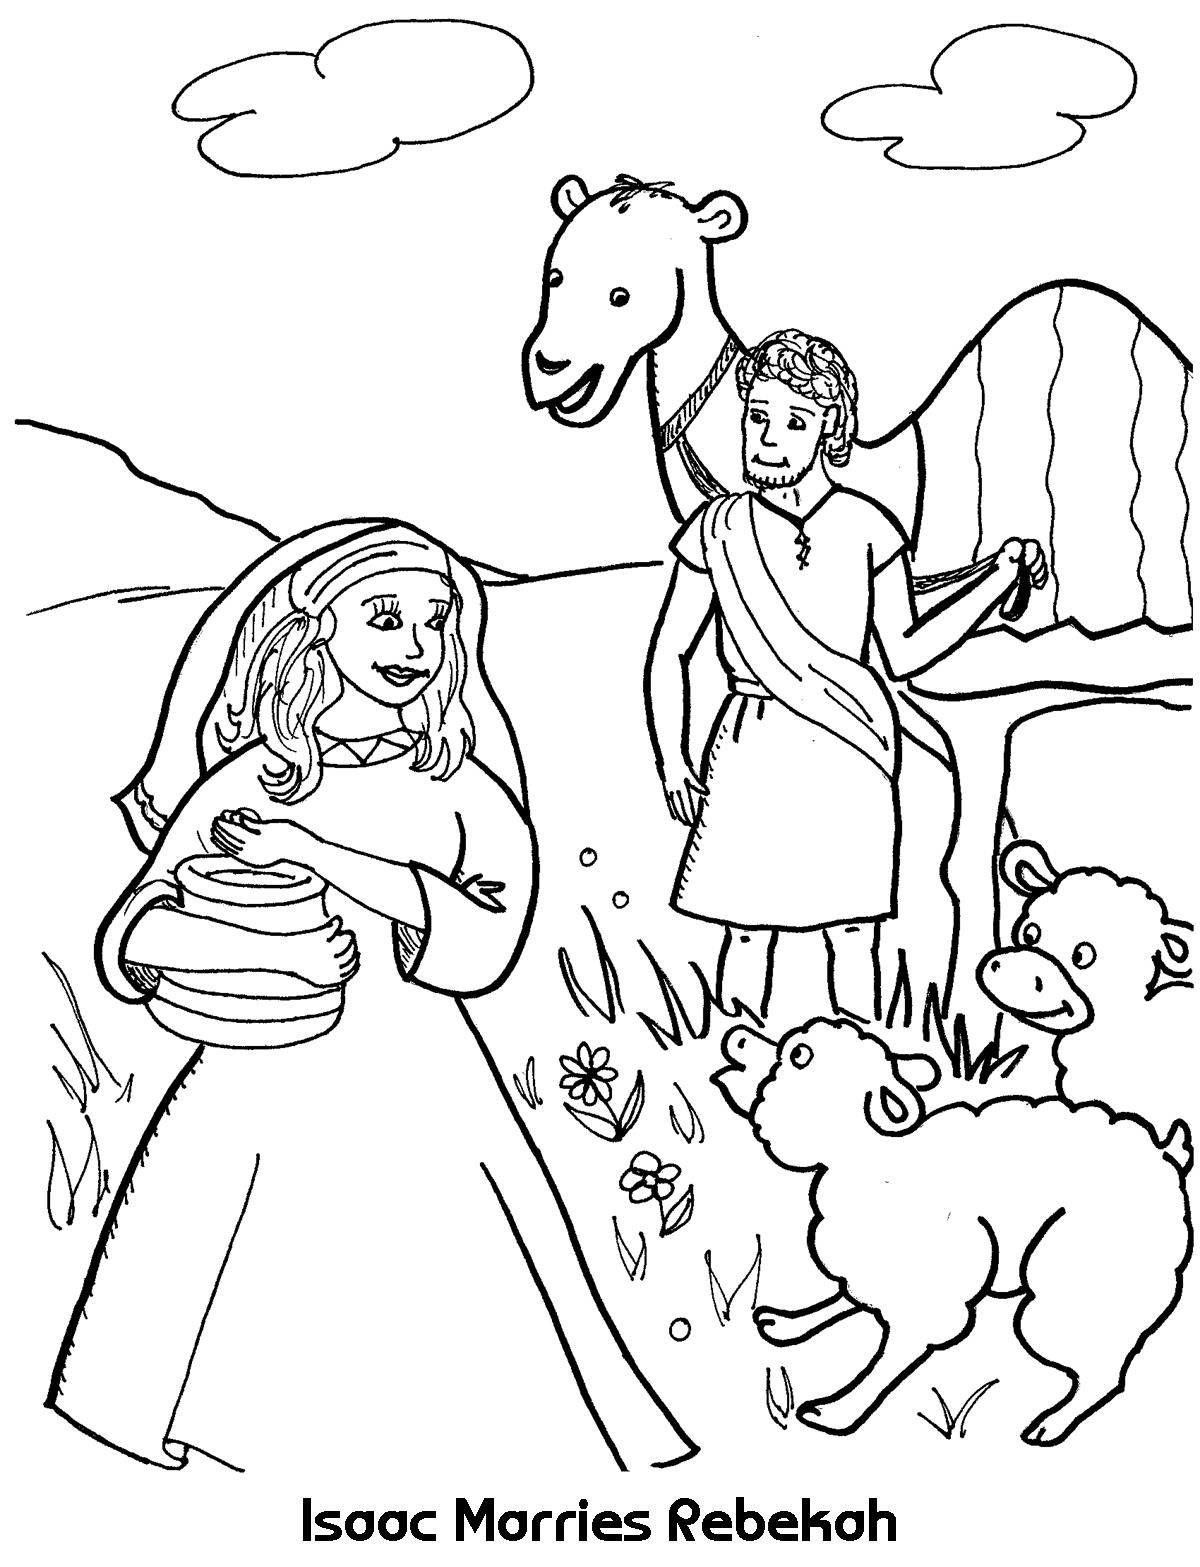 Isaac Marries Rebekah Coloring Sheet Coloring Pages